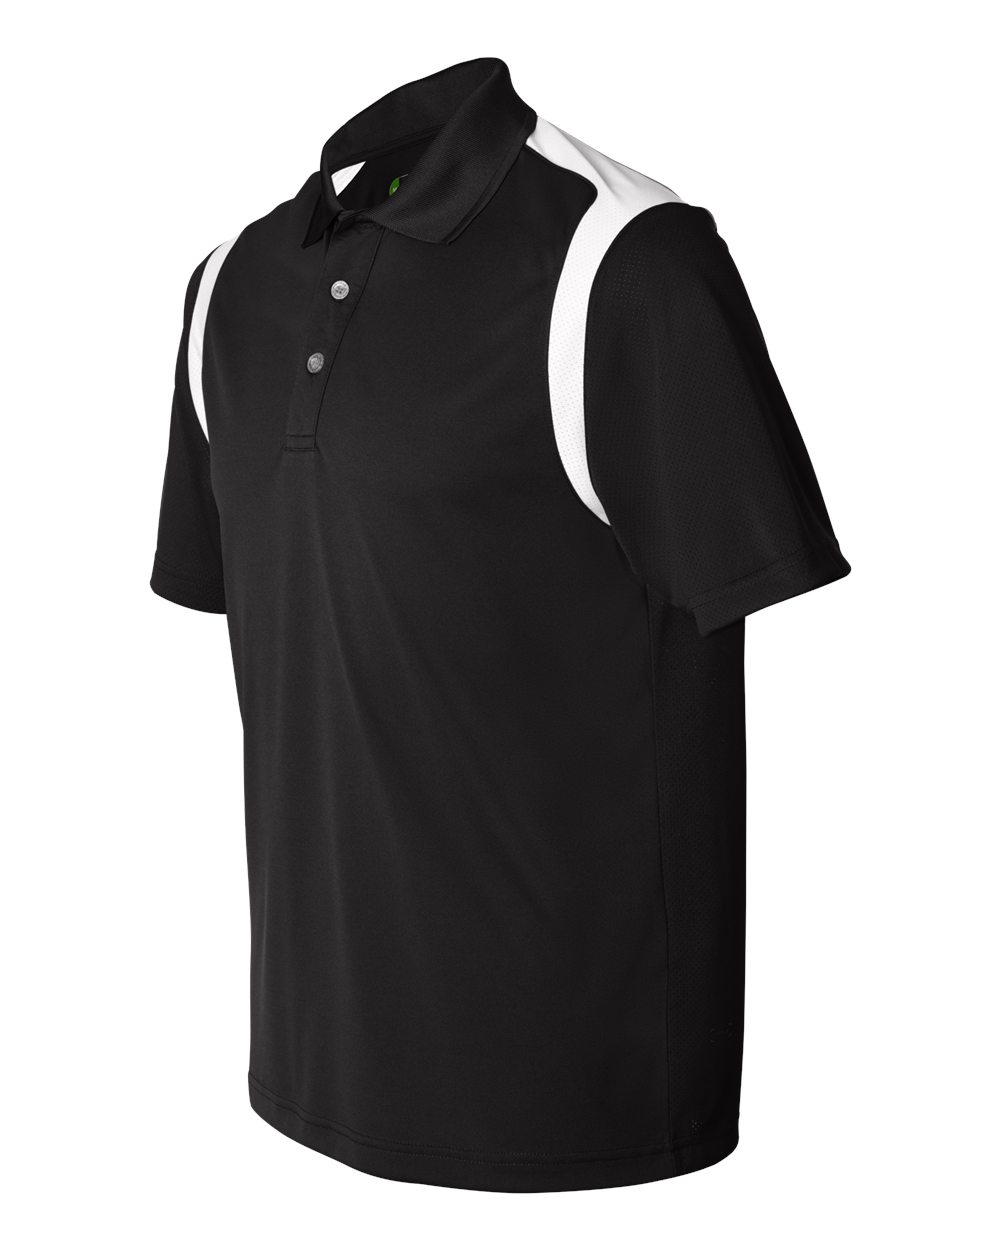 IZOD 13Z0095 - Performance Sport Shirt with Contrast ...